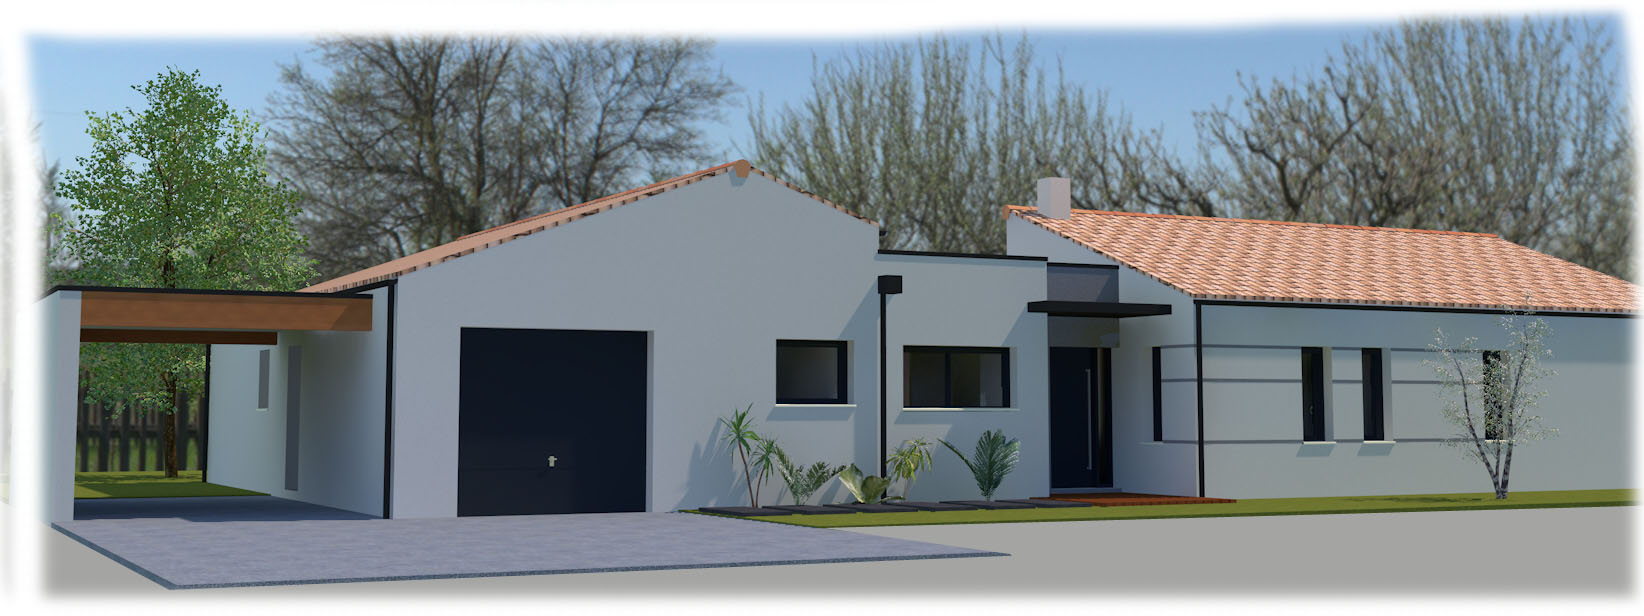 Maison plain pied vendee for Maison contemporaine vendee